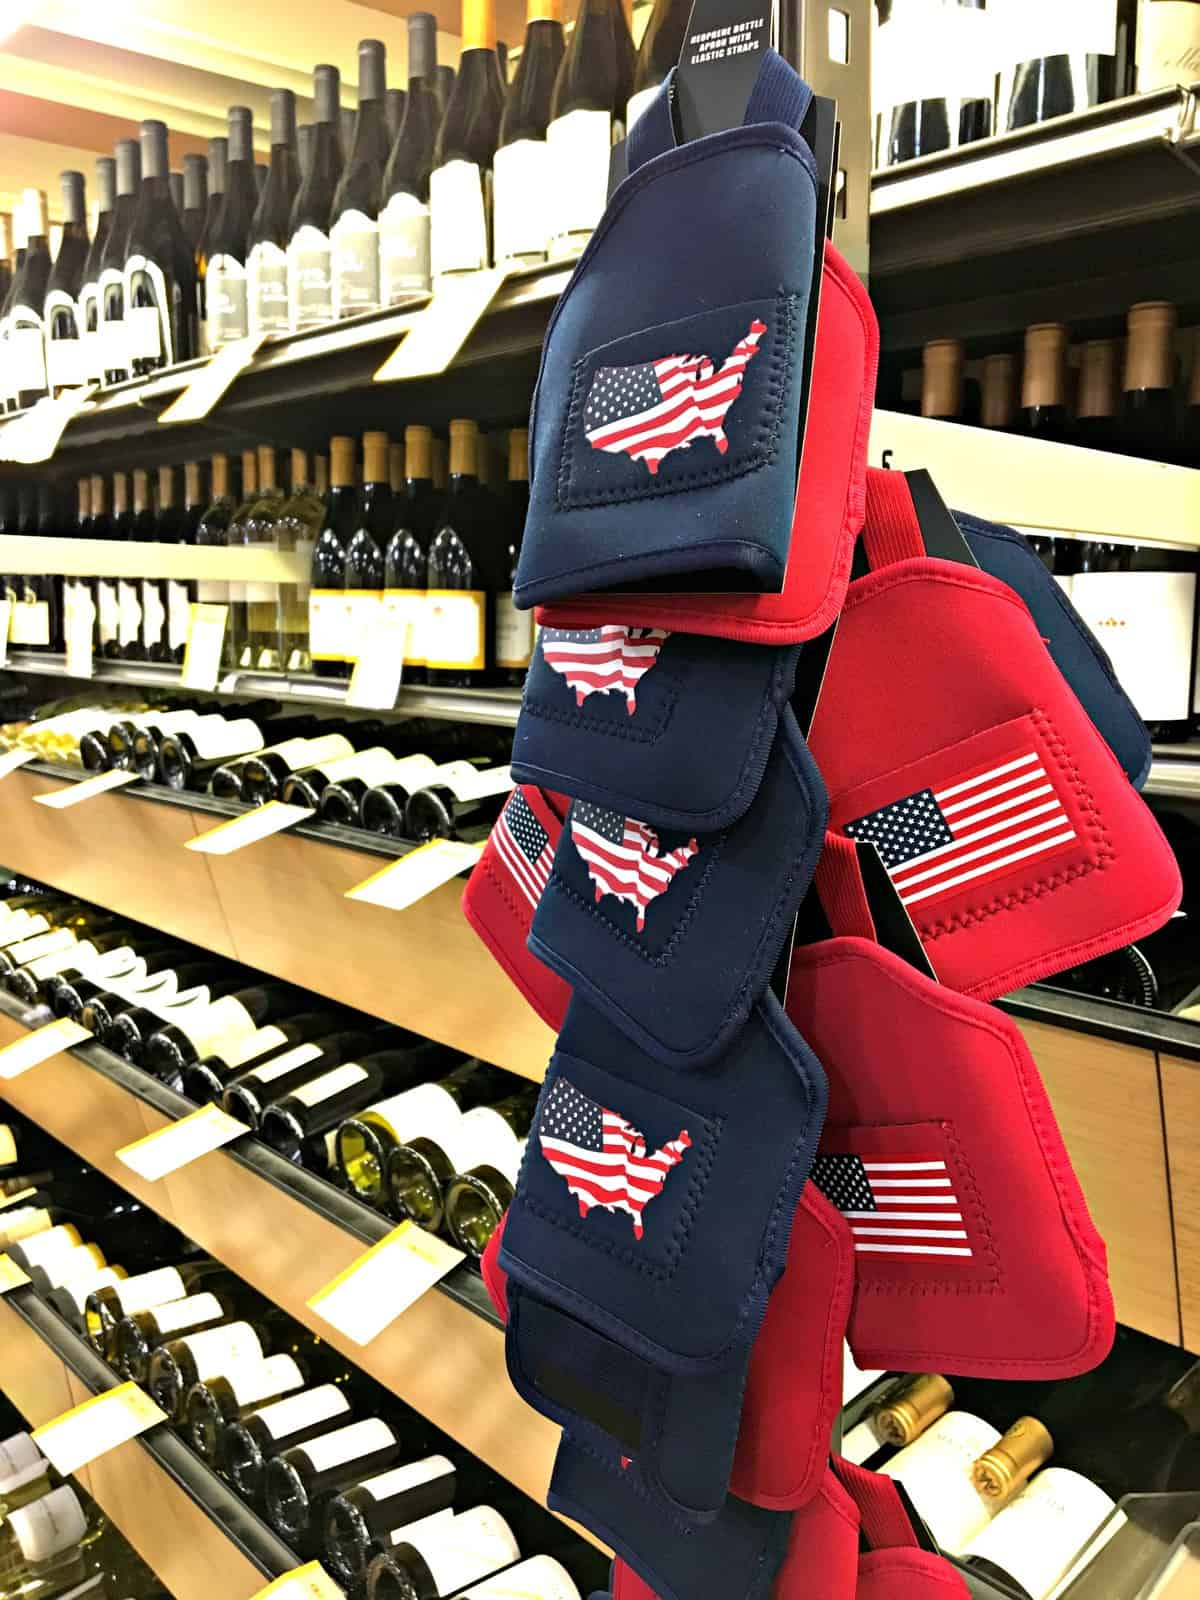 These 4th of july drink koozies from Total Wine are perfect for your summer party